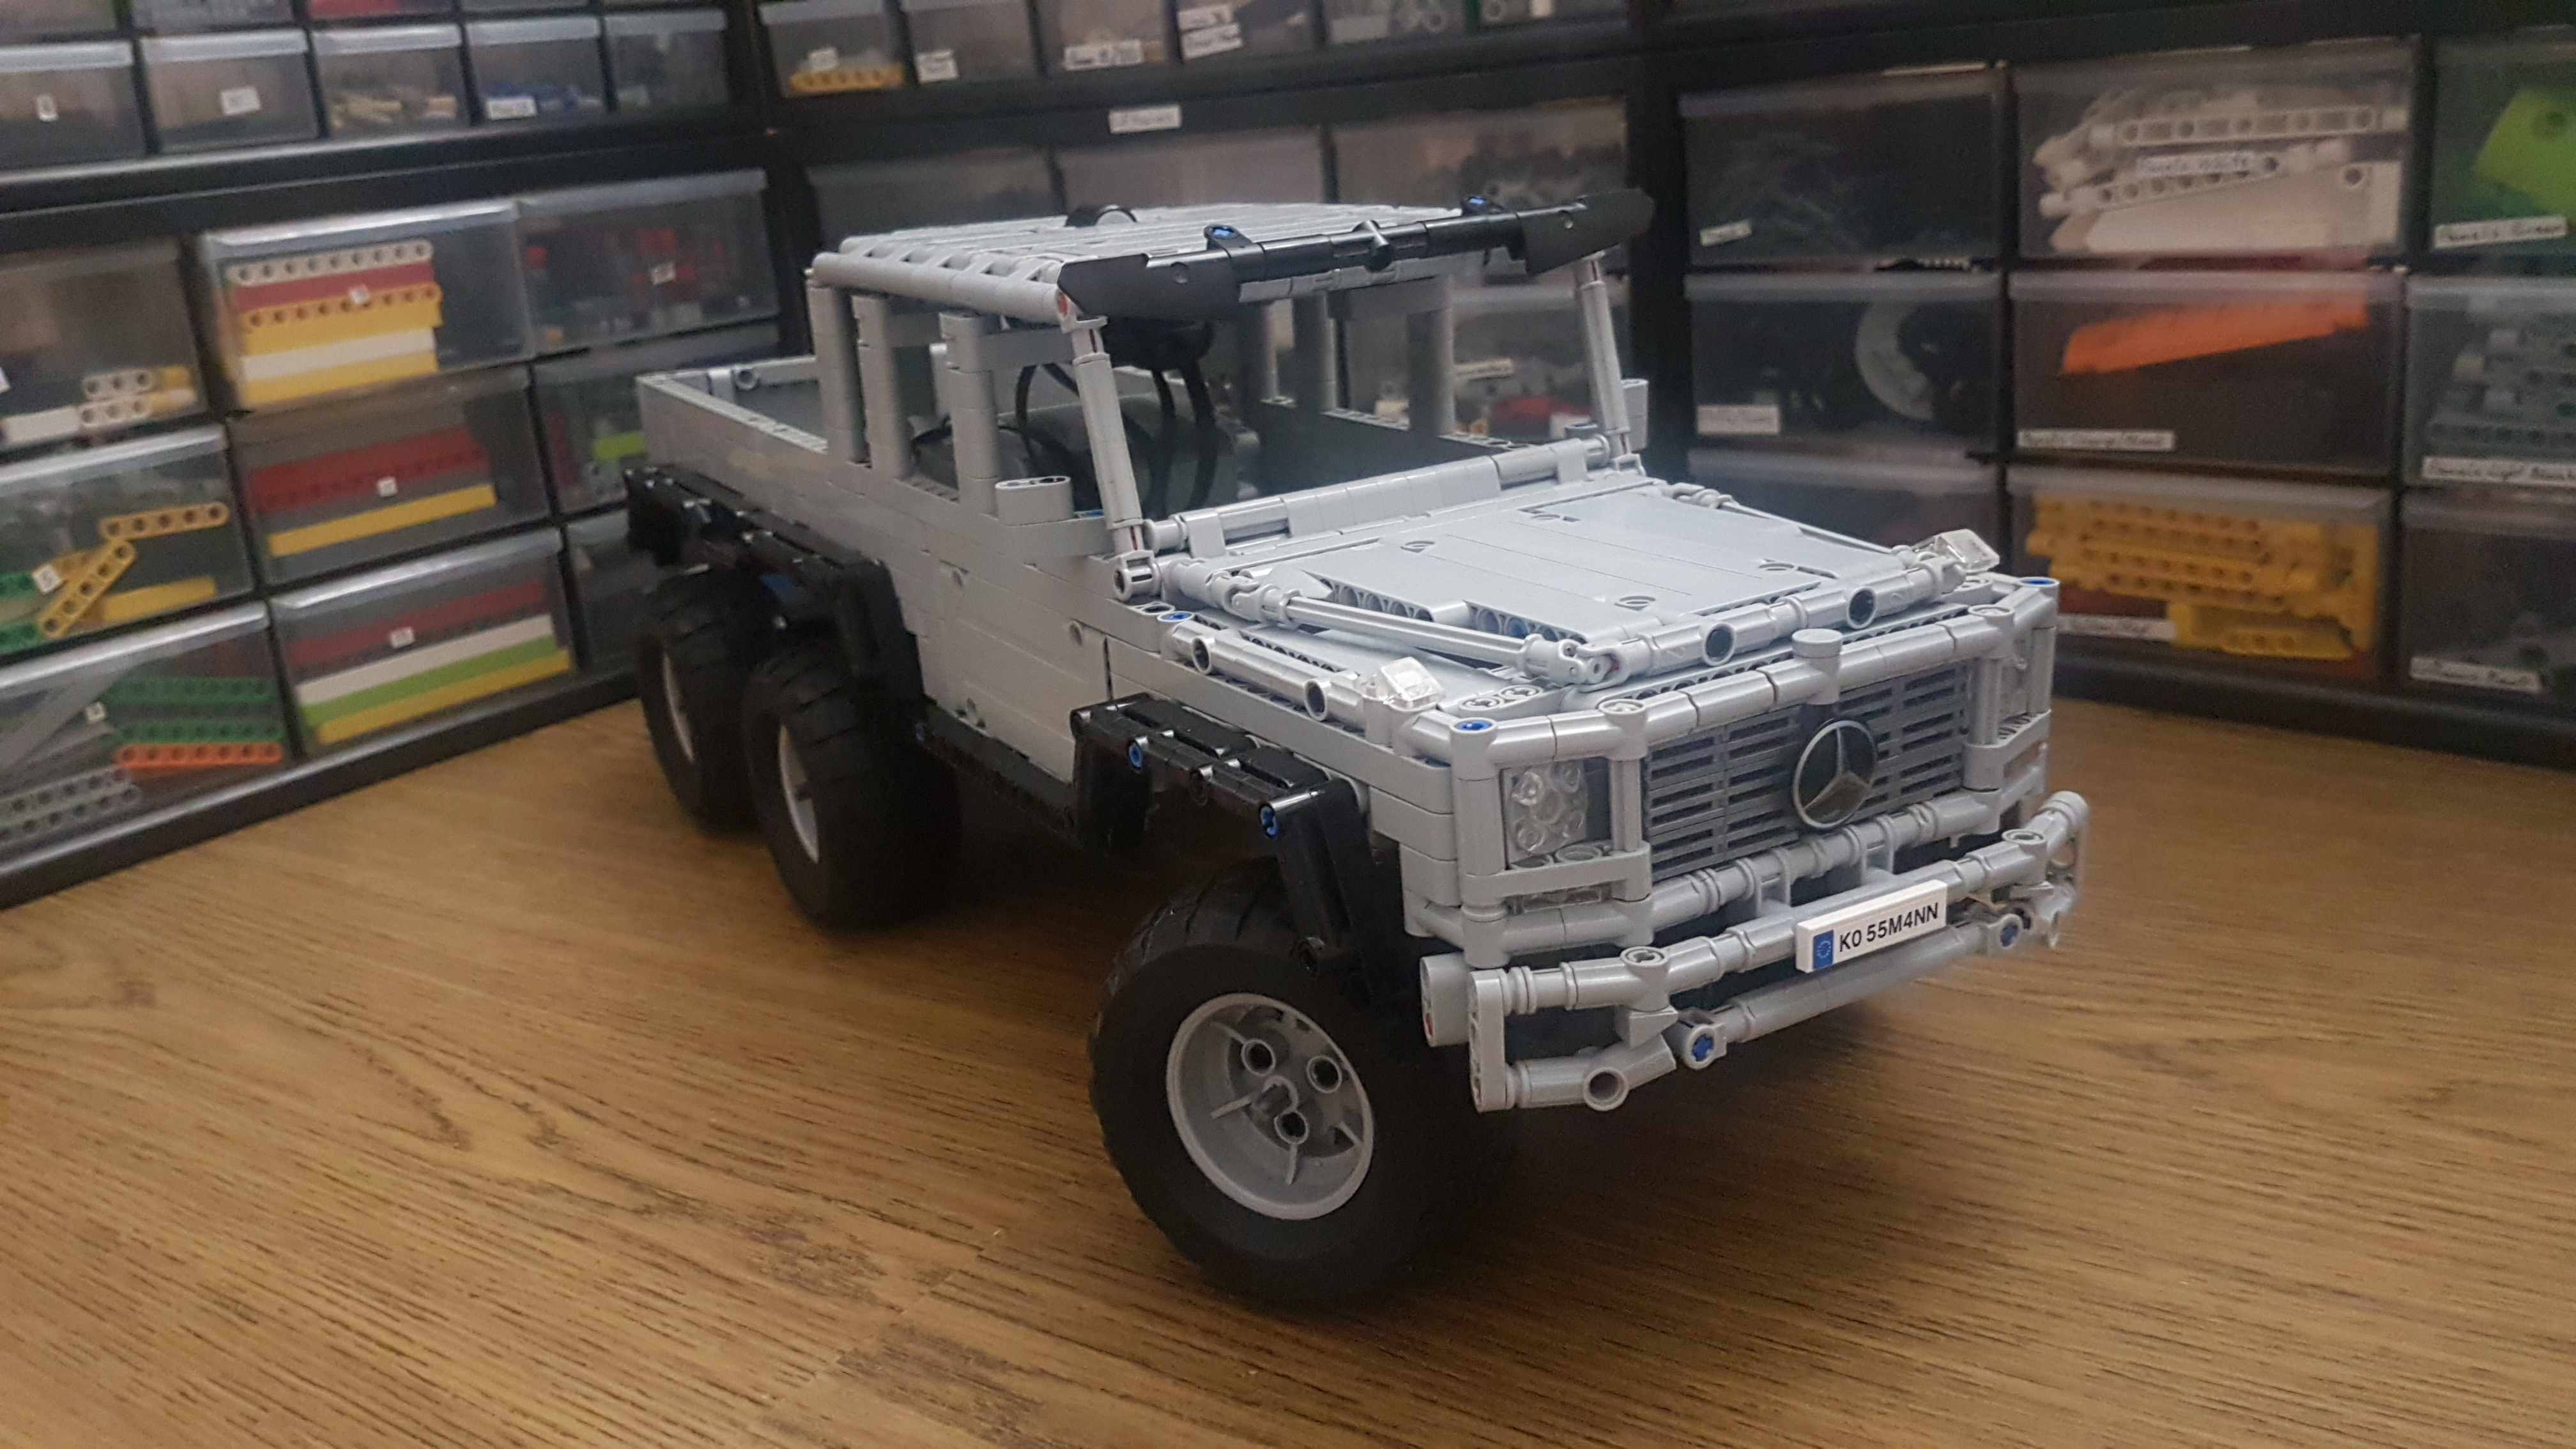 Lego Moc Mercedes Benz G Class 6x6 By Tsmarf Rebrickable Build With Lego